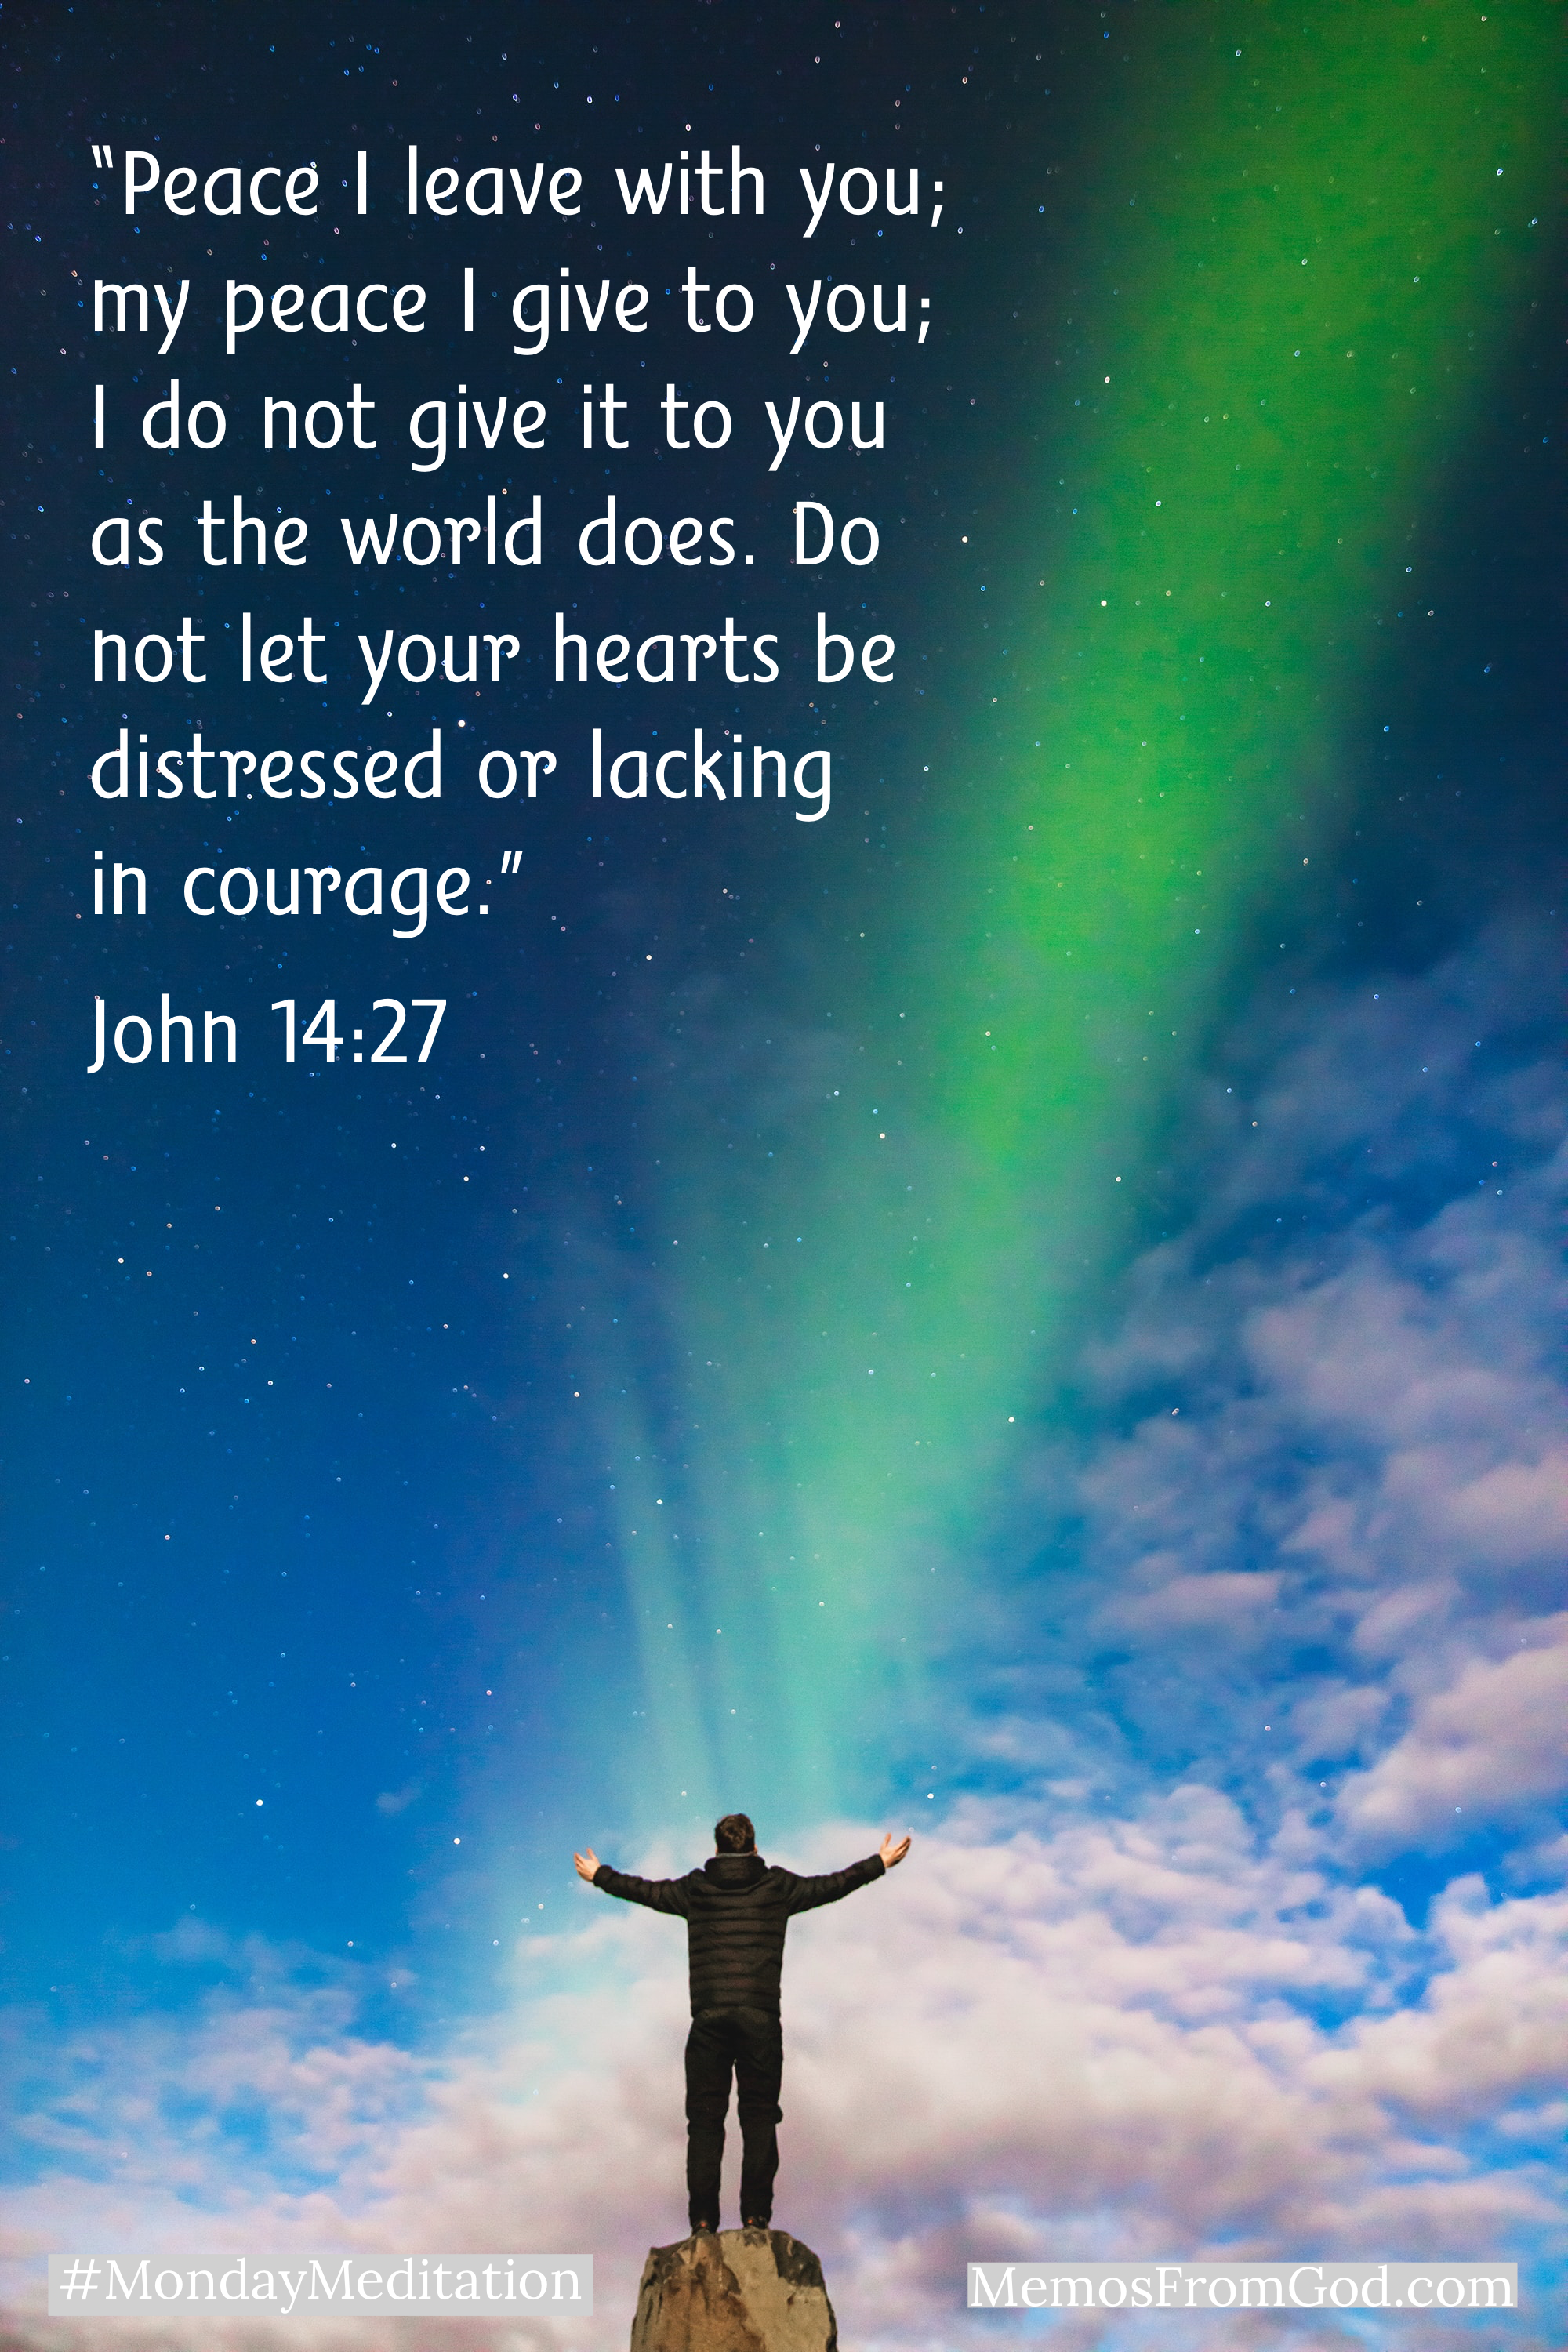 """A man with outstretched arms standing on a rock pillar looking at Northern Lights. Caption: """"Peace I leave with you; my peace I give to you; I do not give it to you as the world does. Do not let your hearts be distressed or lacking in courage."""" John 14:27"""